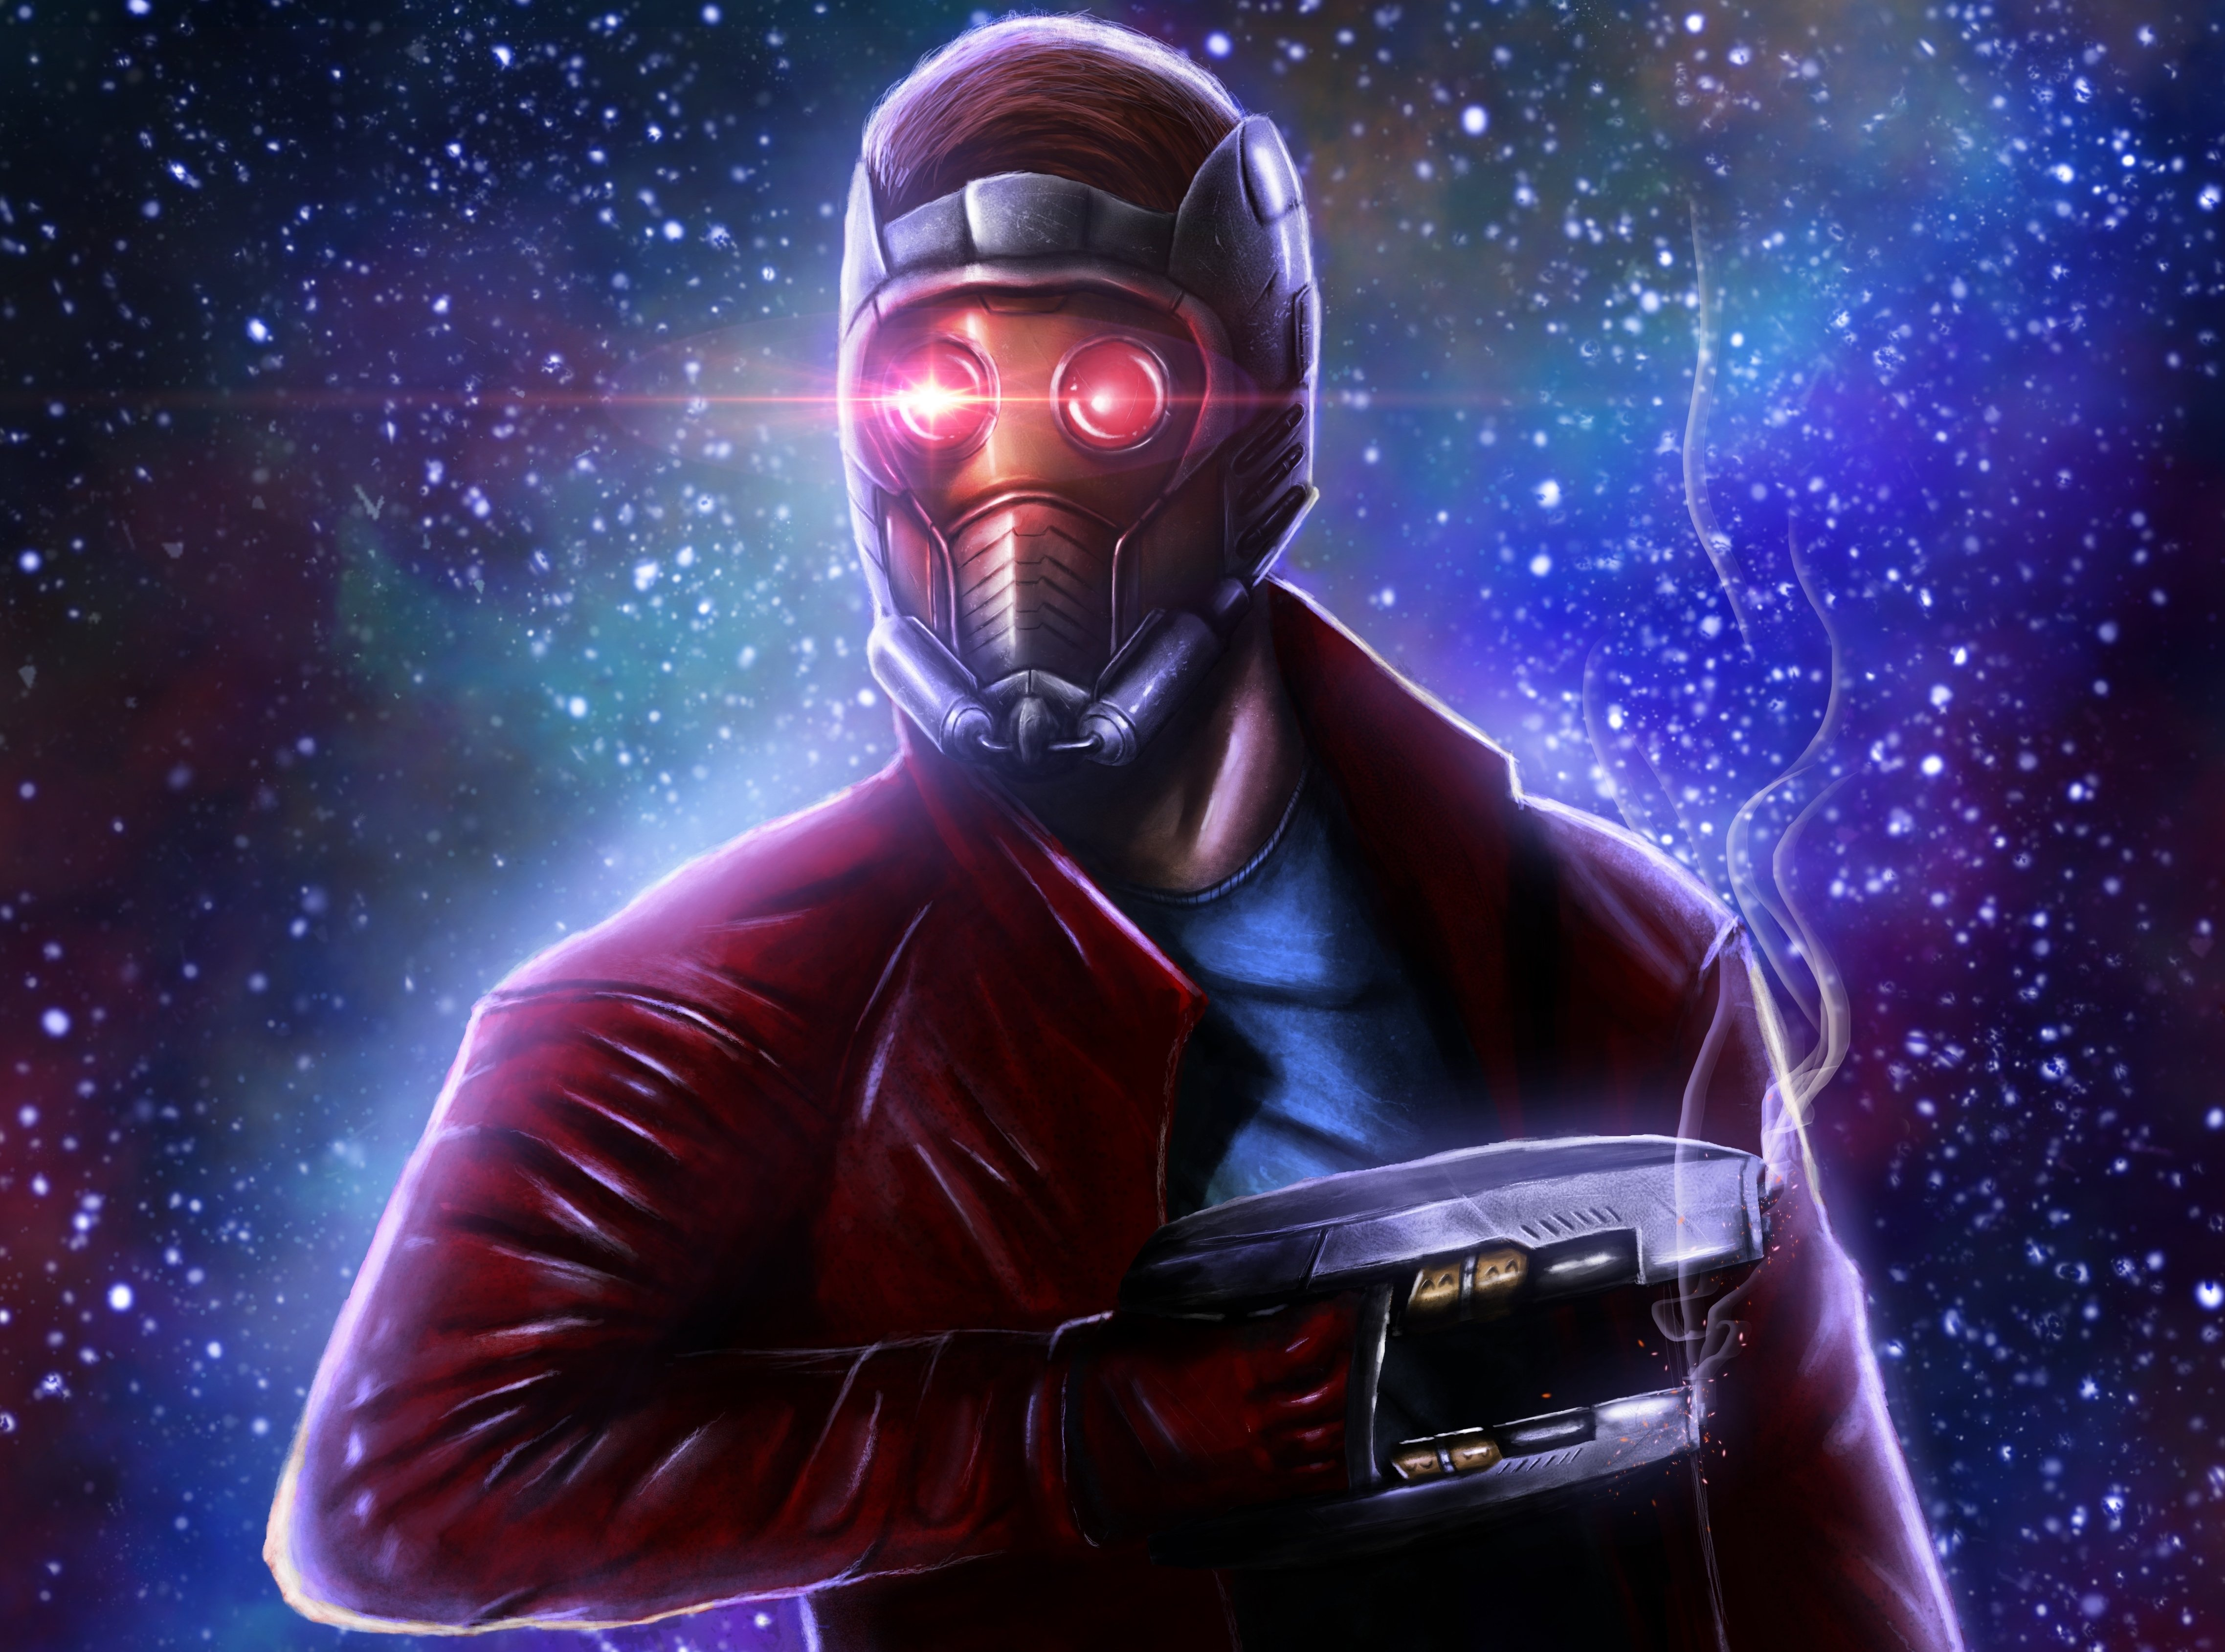 Guardians Of The Galaxy Star Lord Abstract Art 4k Hd: Guardians Of The Galaxy Star Lord Movies Fantasy Space